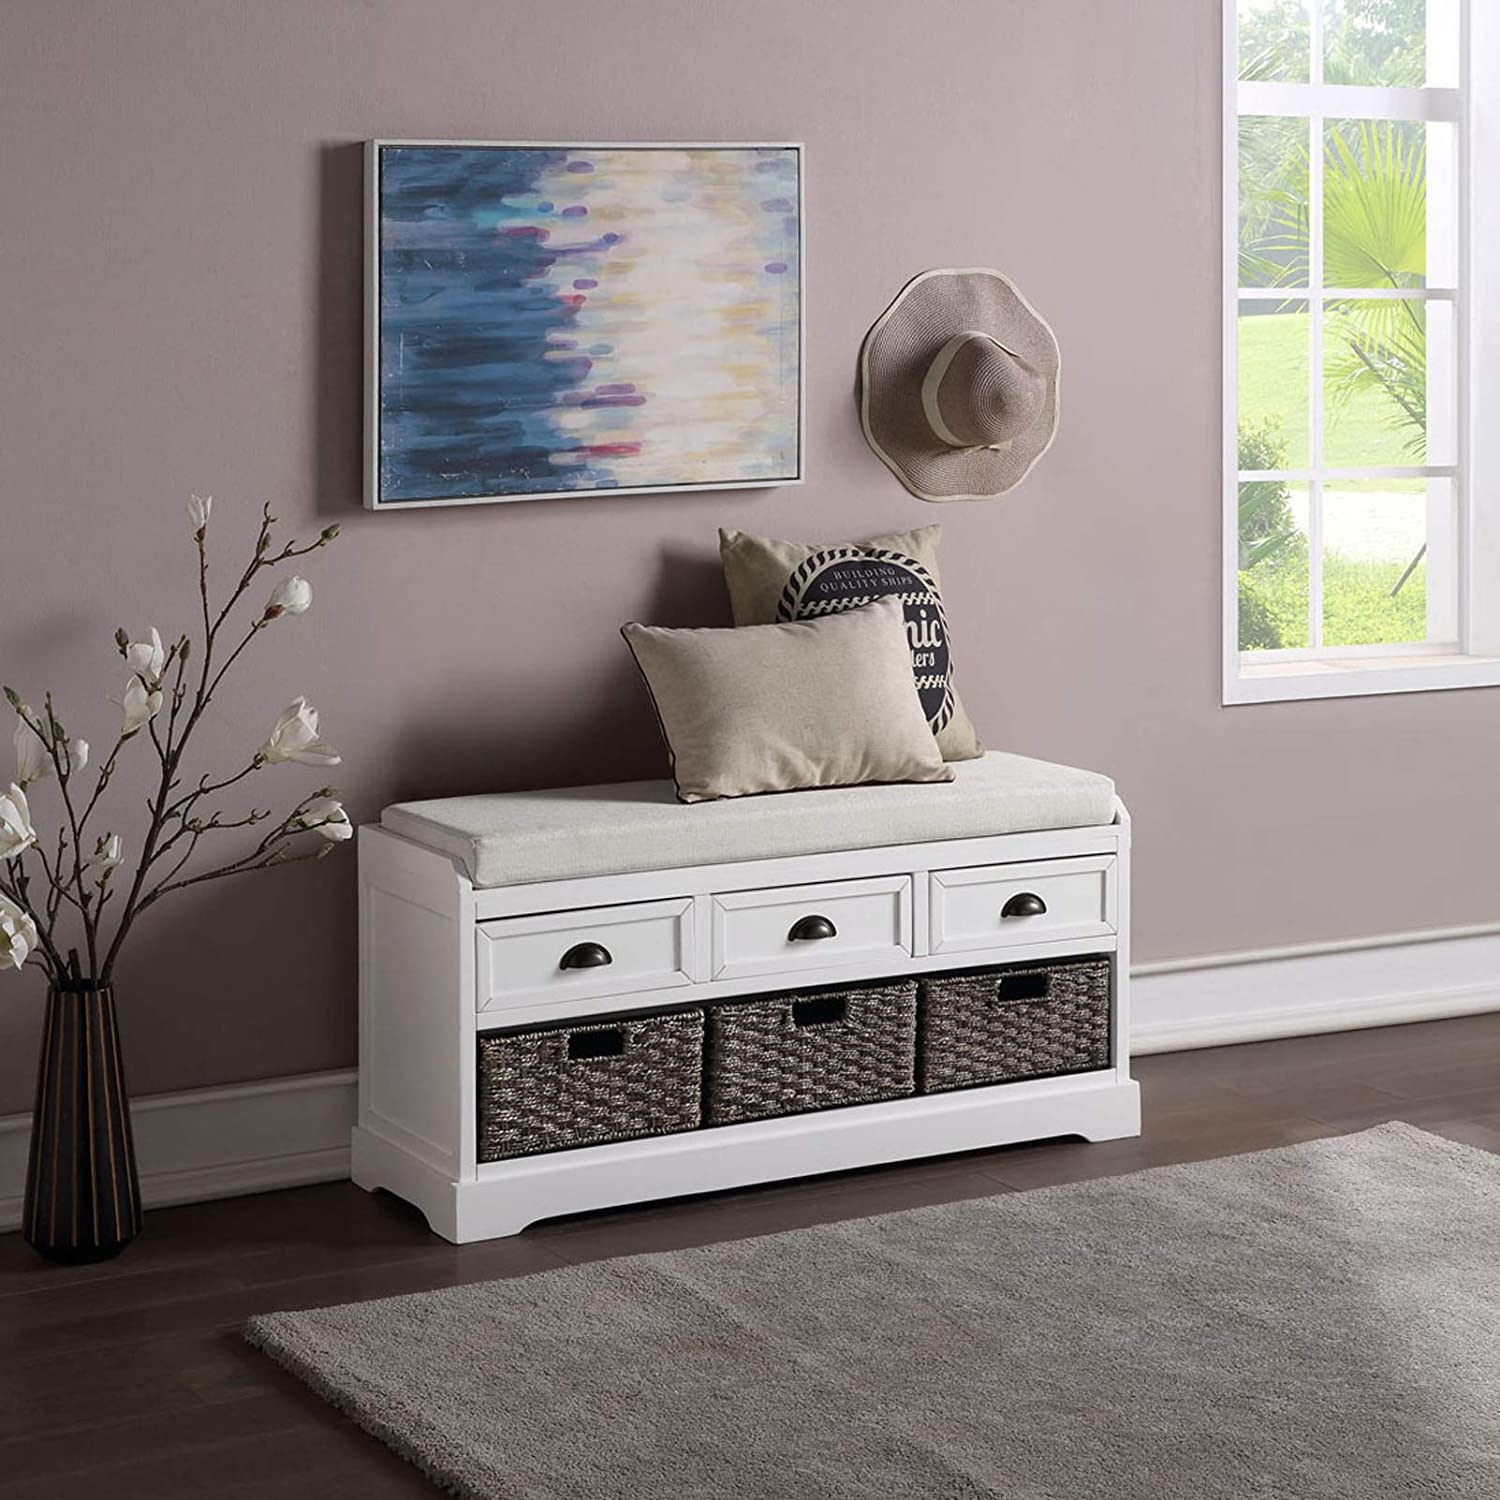 Rustic Wood Storage Bench with 3 Drawers and 3 Woven Baskets Home Collection Wicker Storage Shoe Bench Cabinet with Removable Cushion, Entryway Shoes Organizer for Living Room Entryway Hallway (White)